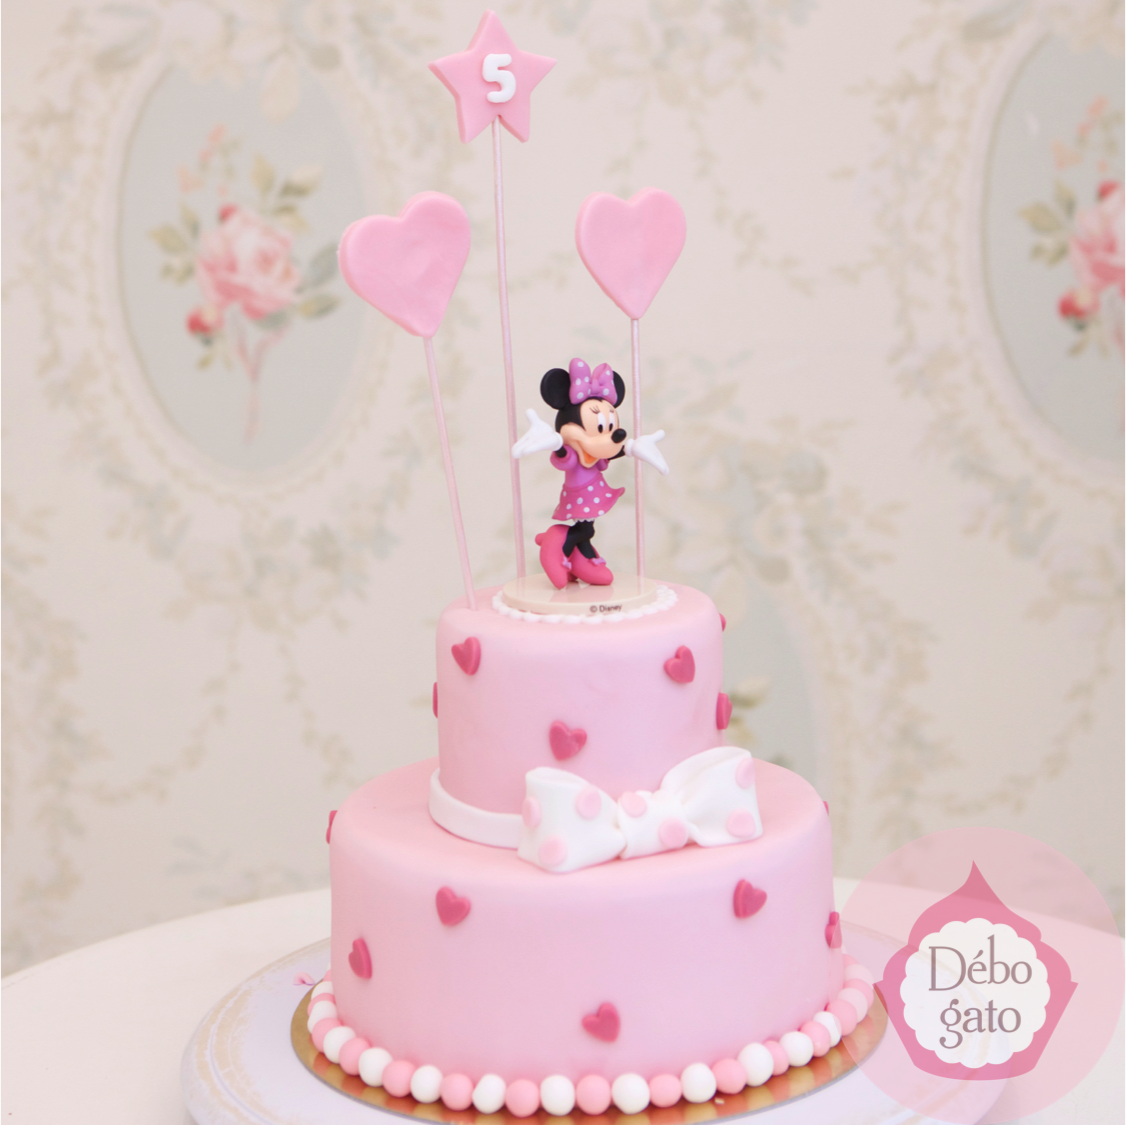 g teau minnie anniversaire birthday cake g teaux personnalis s fille rose personnages. Black Bedroom Furniture Sets. Home Design Ideas